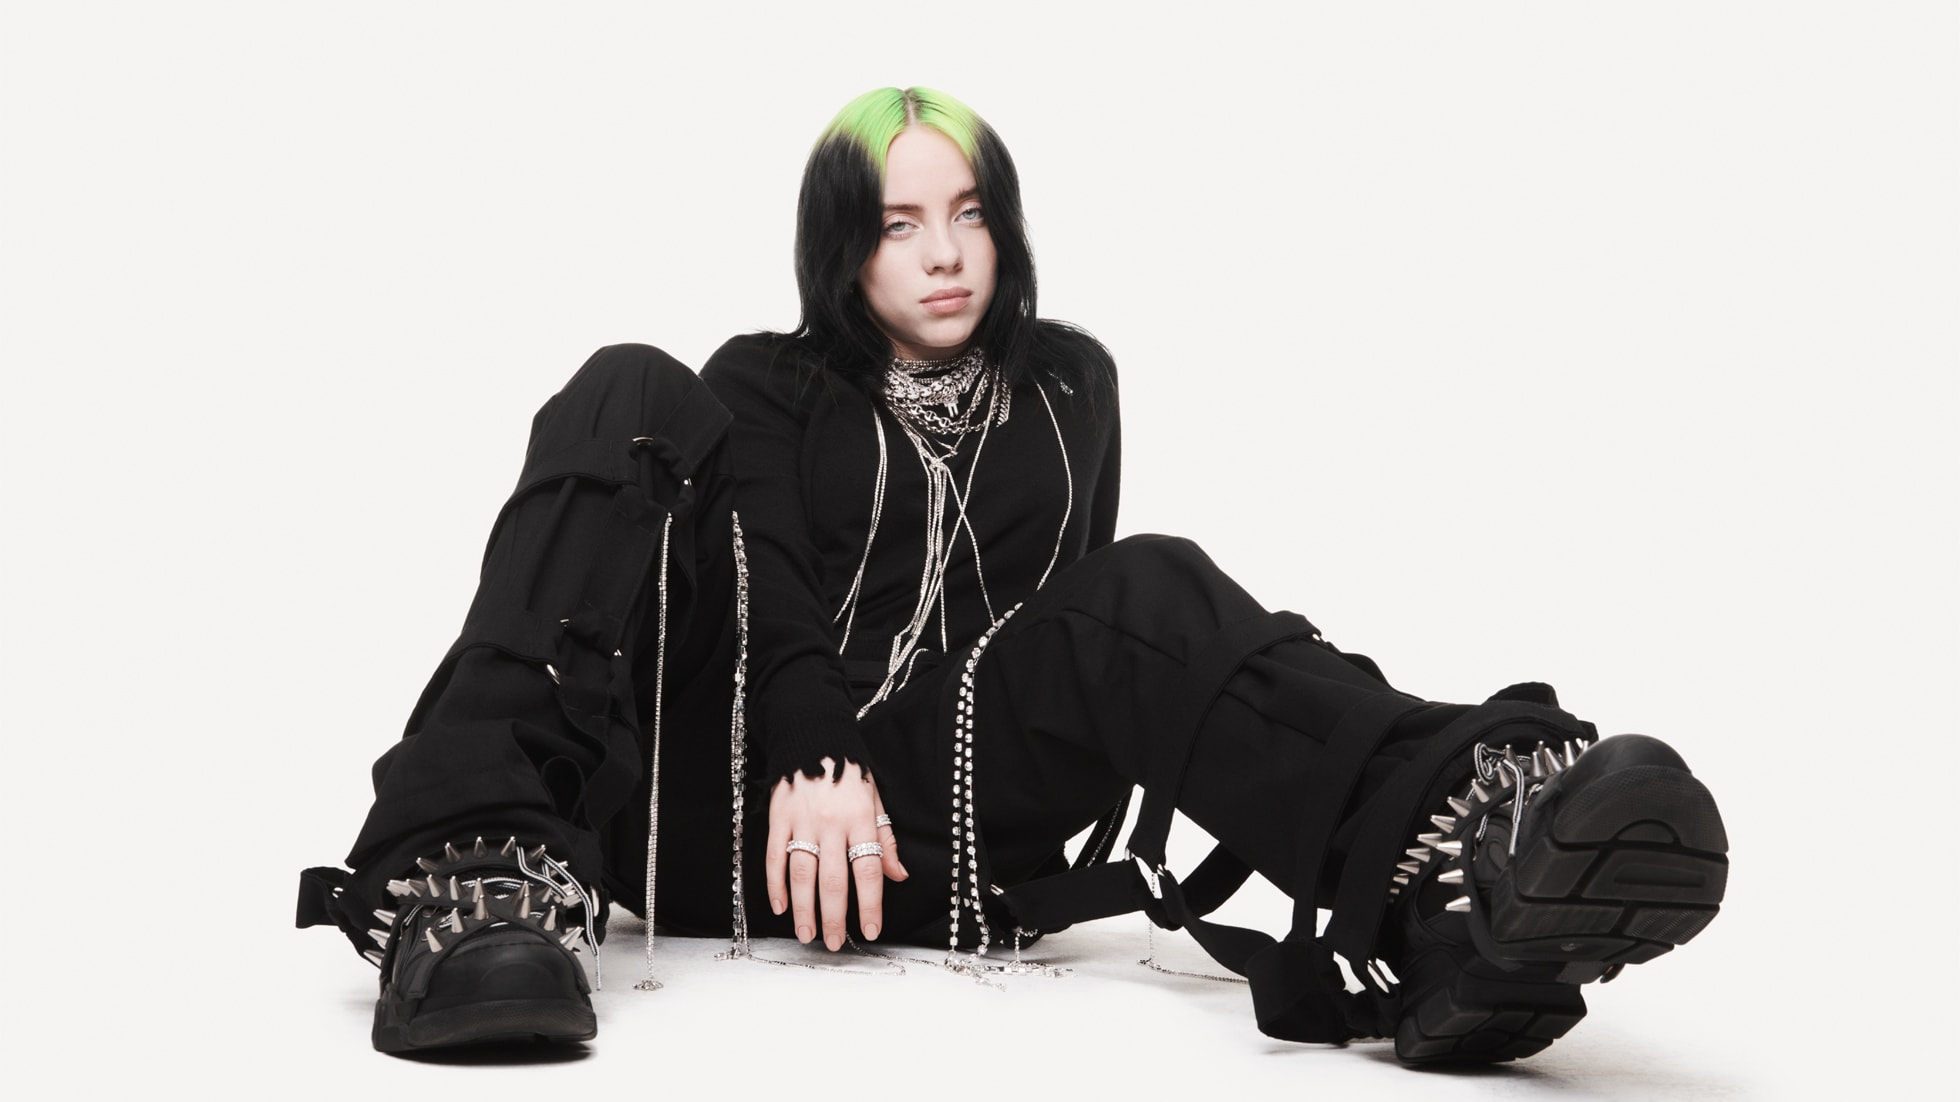 Billie Eilish performs at Apple Music Awards, Apple bidding for her documentary